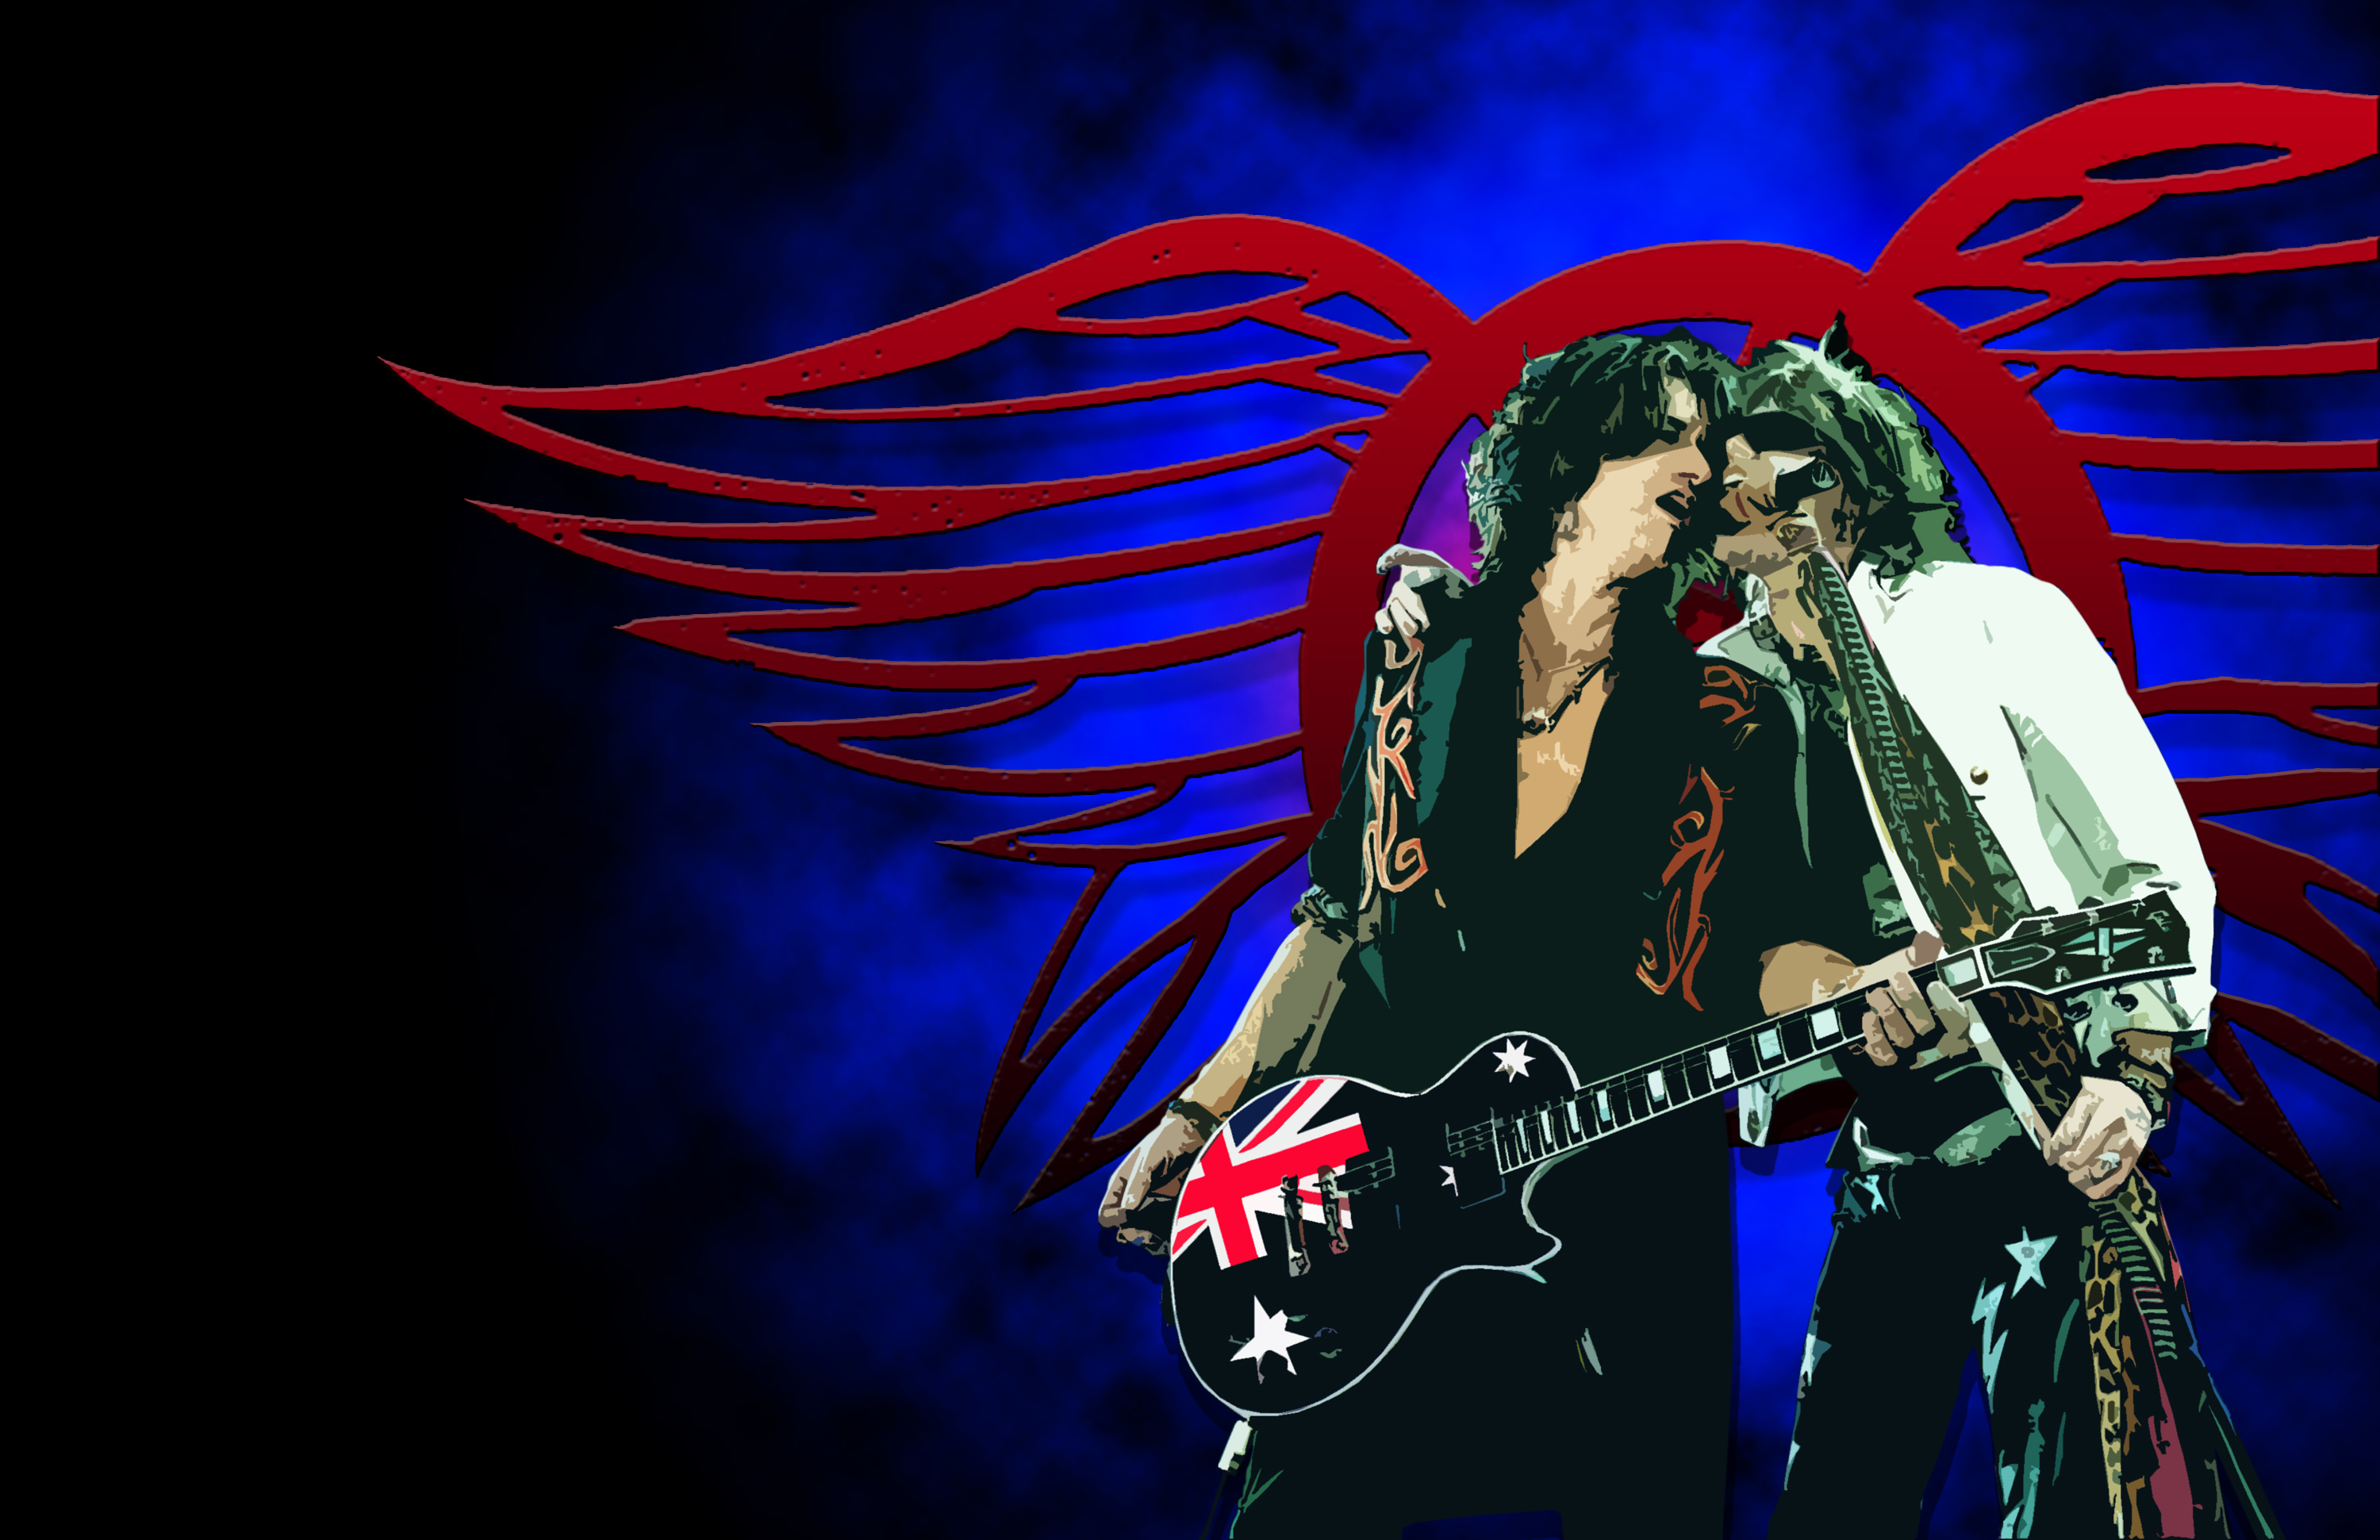 Aerosmith Wallpaper 3000x1941